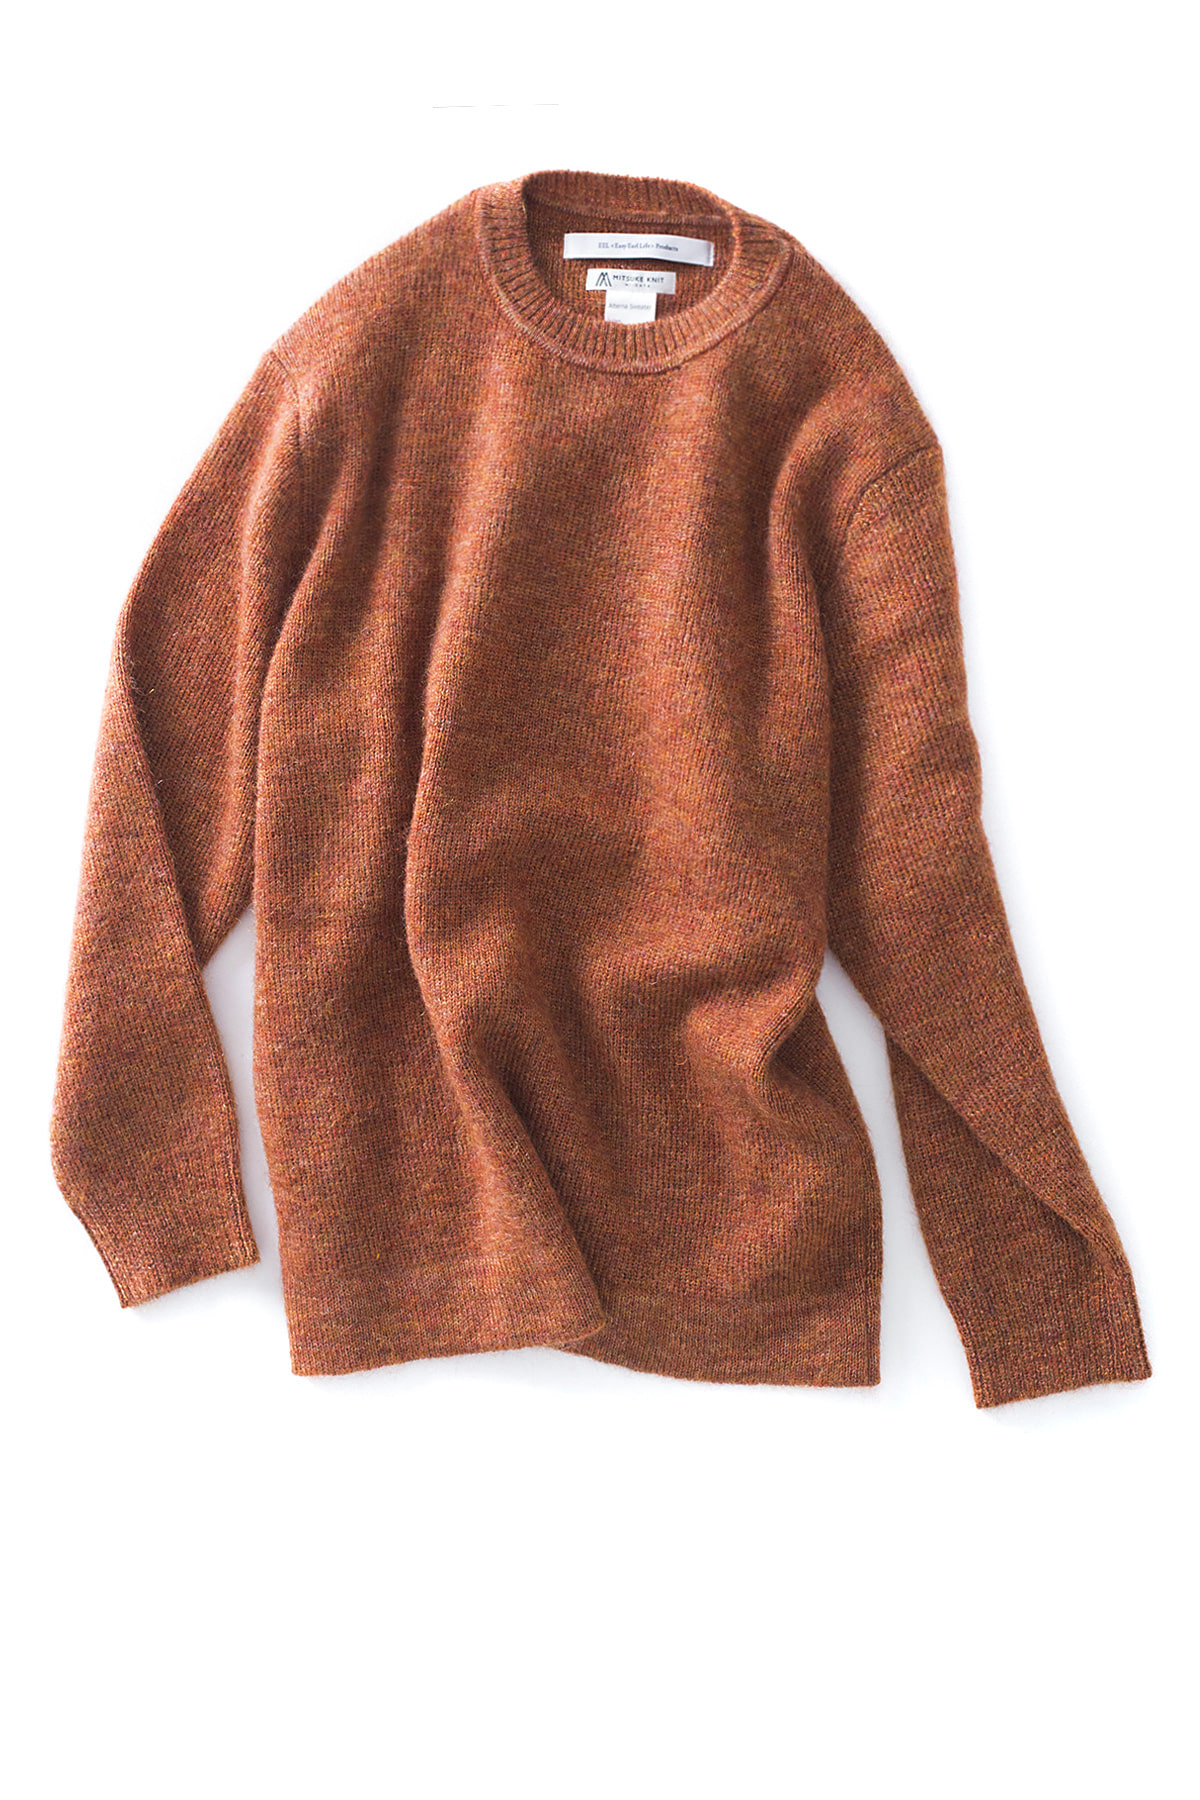 EEL : Alterna Sweater (Orange)